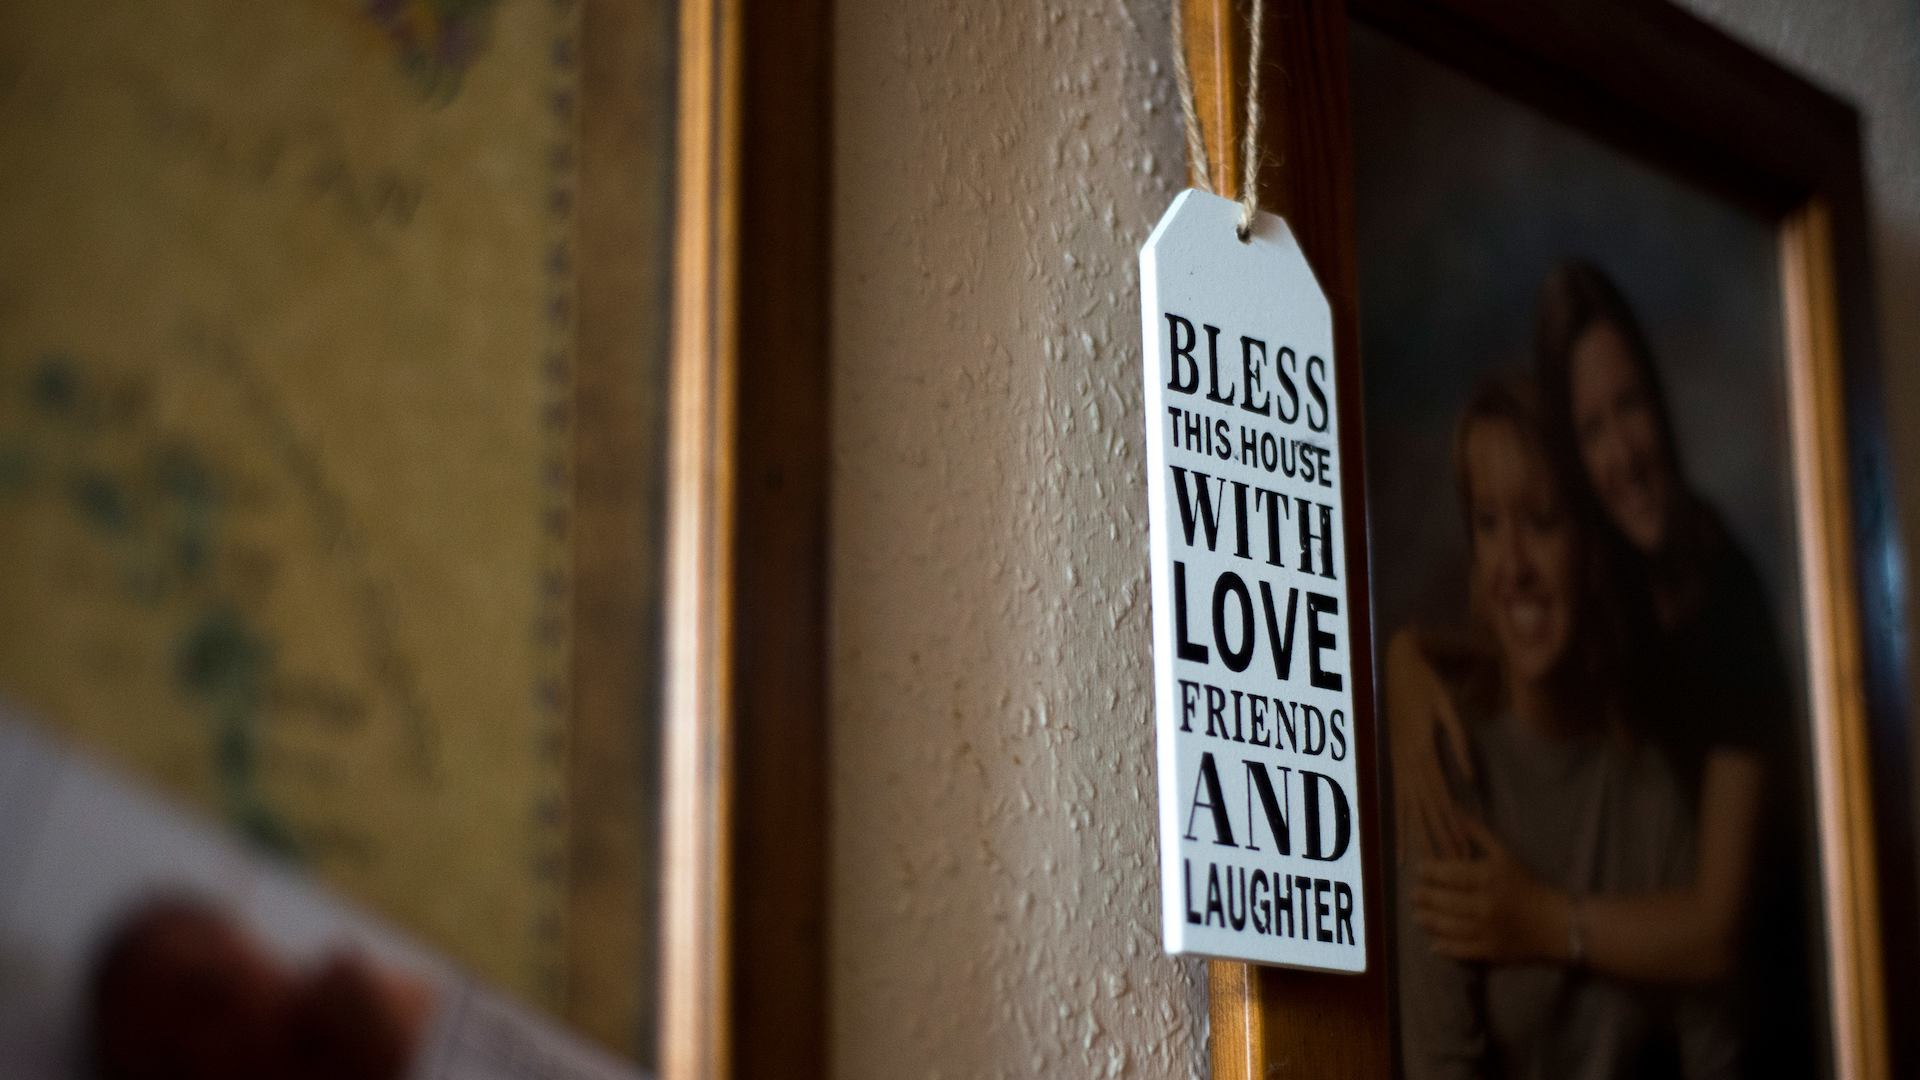 'Bless this house with love, friends and laughter' tag hanging from a family photo.